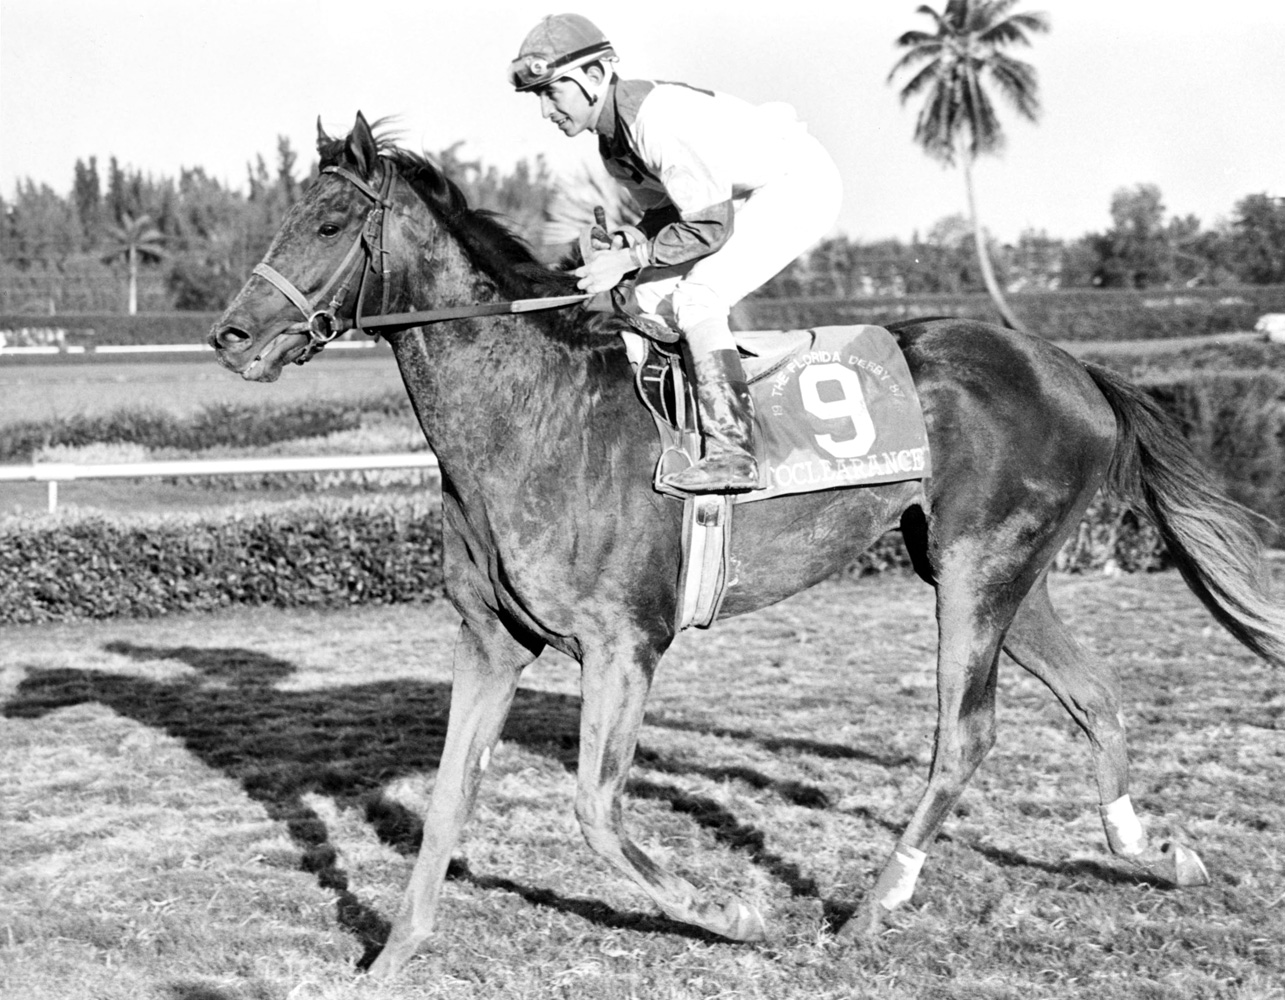 Jose Santos and Cryptoclearance after winning the 1987 Florida Derby at Gulfstream Park (Jim Raftery Turfotos)